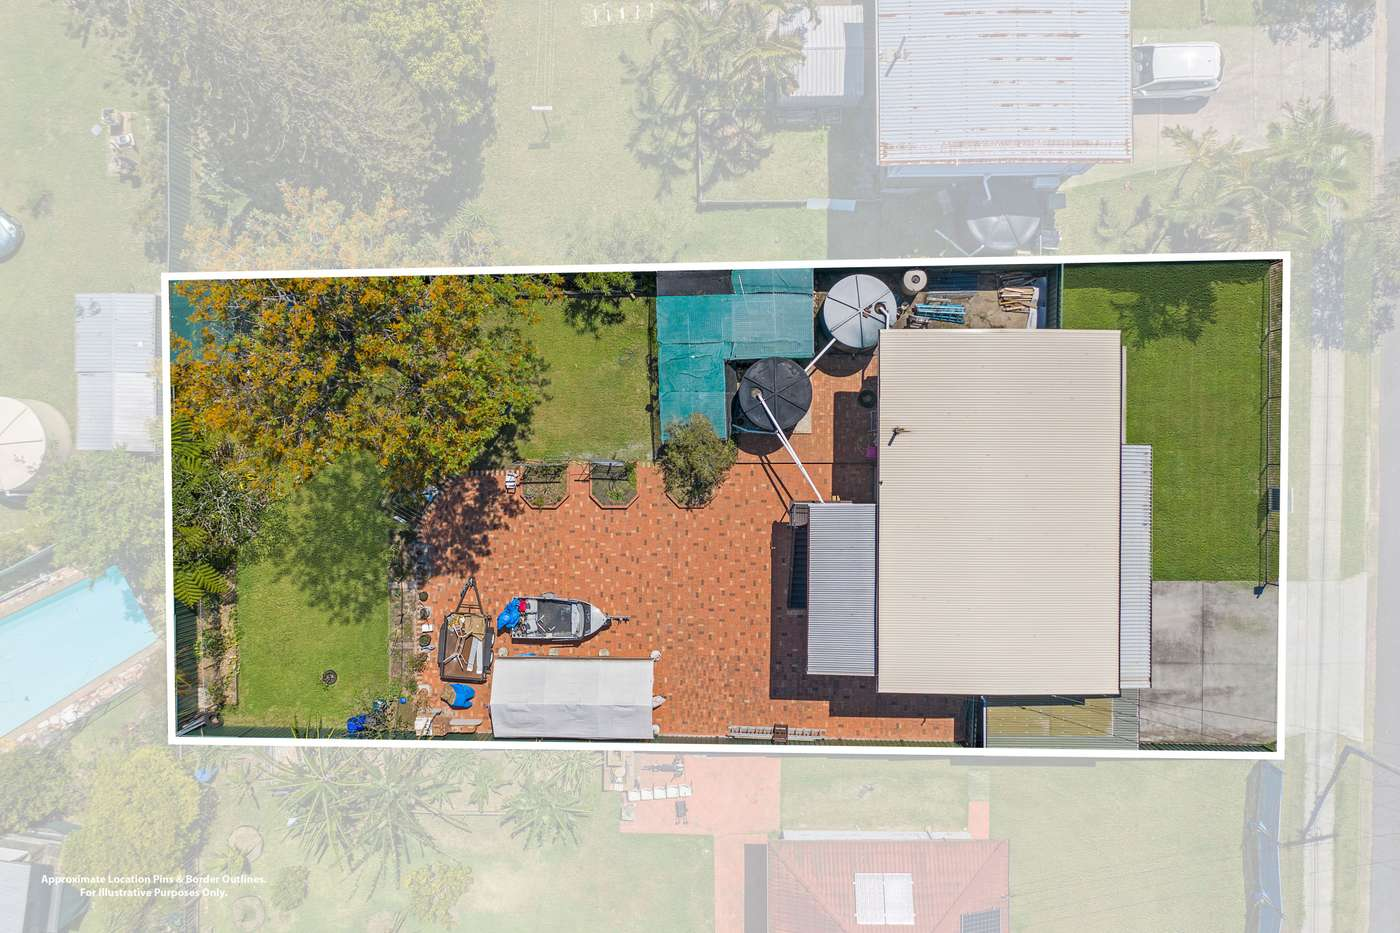 Main view of Homely house listing, 27 Finlay Street, Slacks Creek, QLD 4127